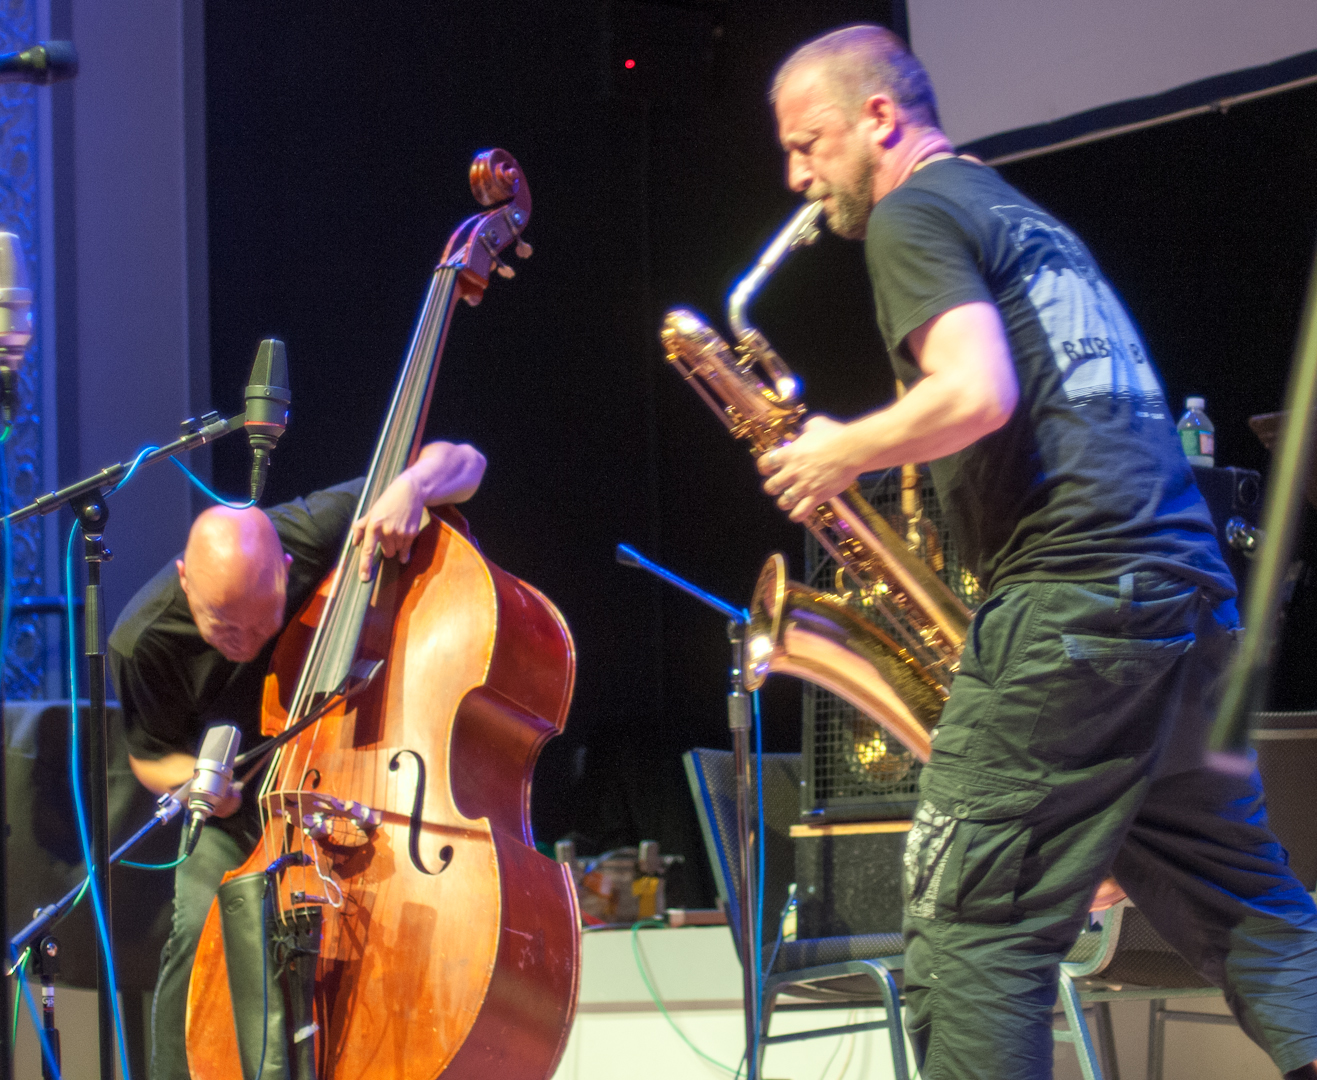 Mats Gustafsson And Ingebrigt Haker Flaten With The Thing At The Vision Festival 2012